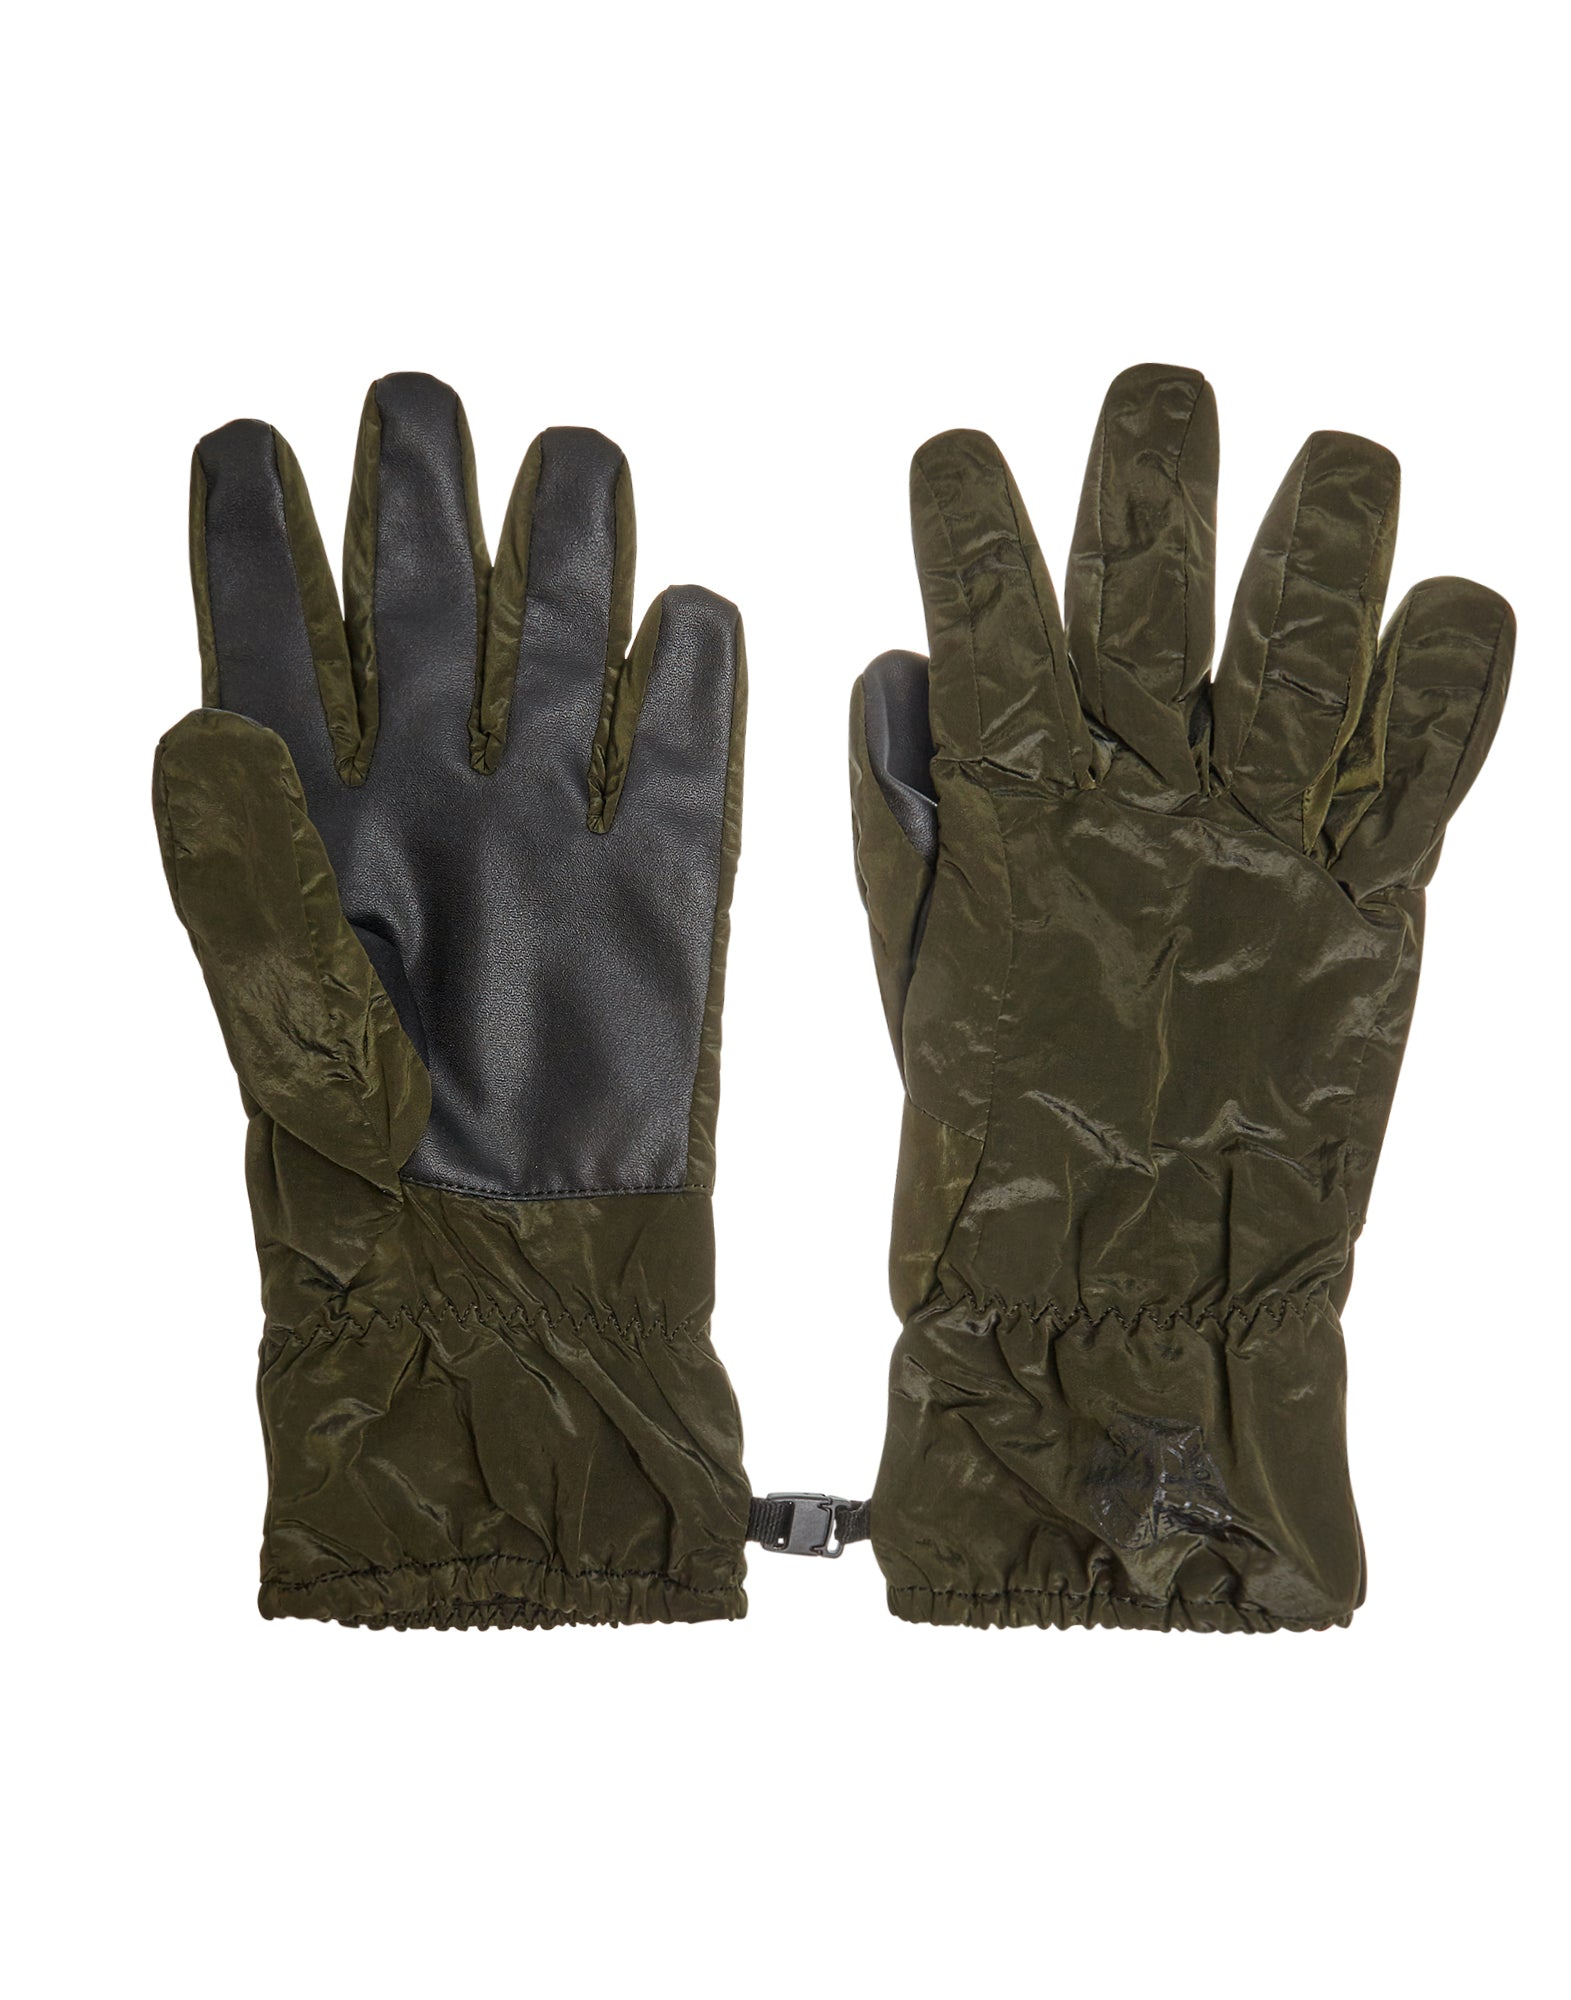 92069 NYLON METAL Gloves in Green